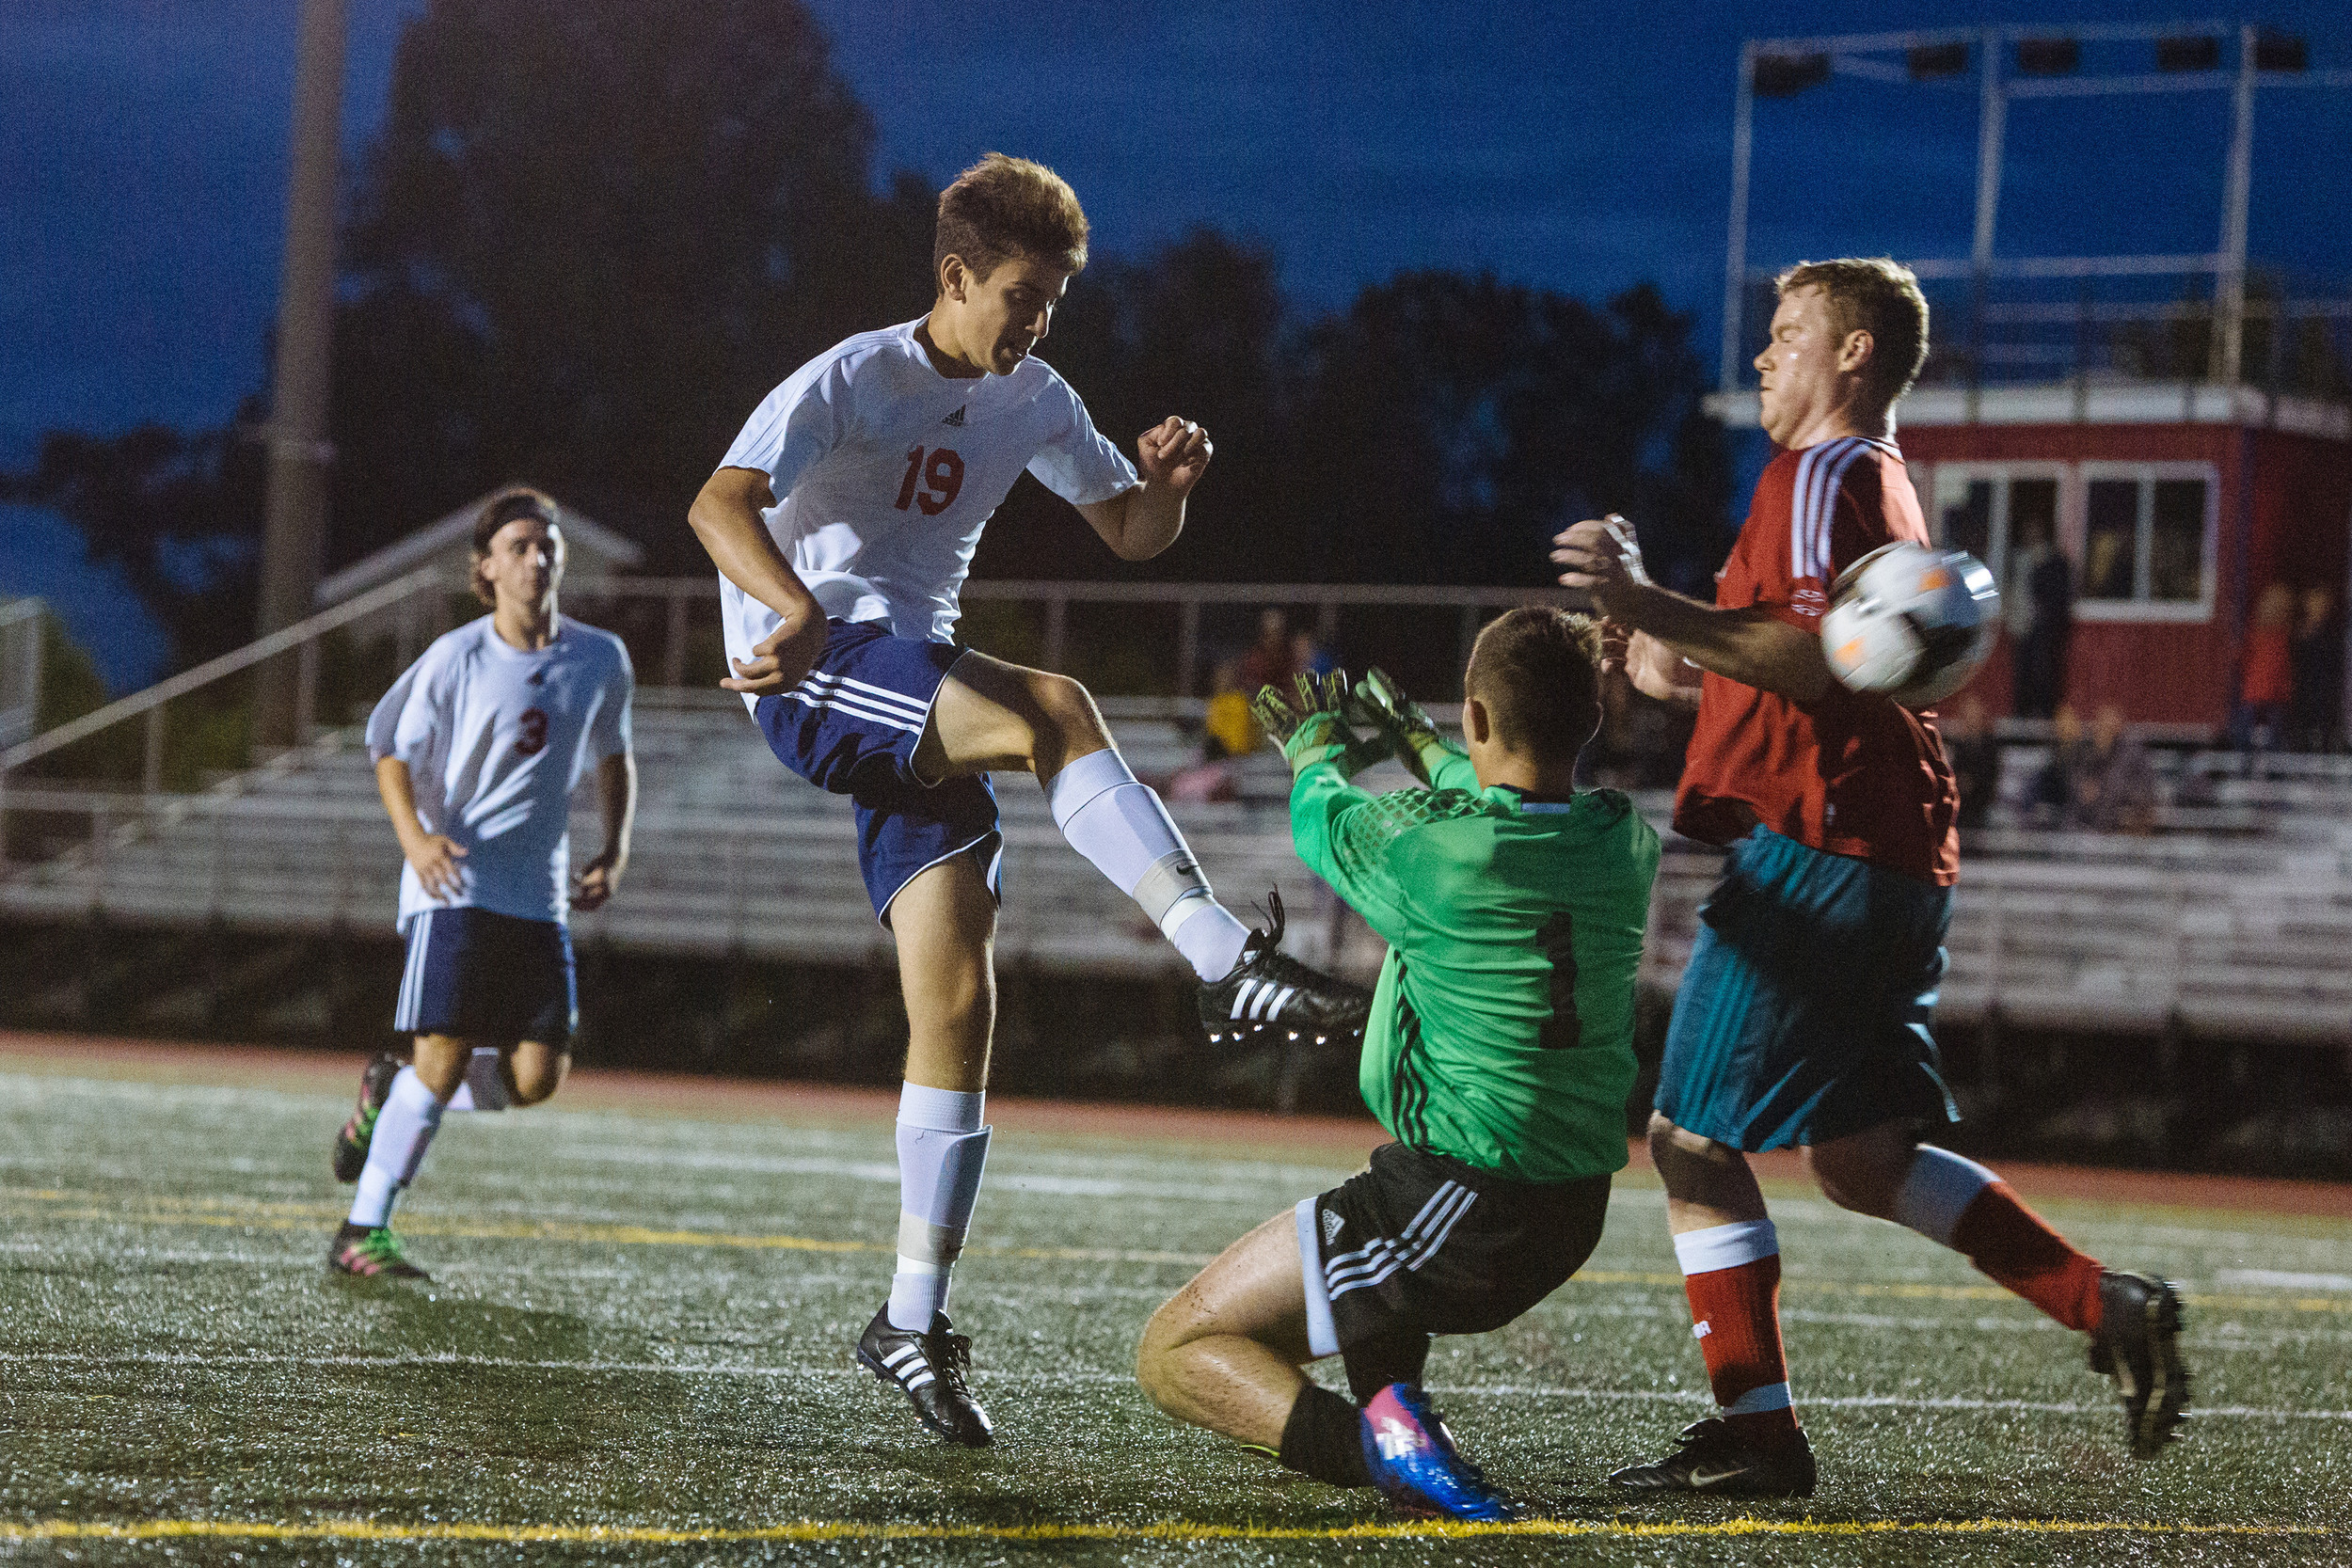 Junior Alex Karousos kicks the ball past goalkeeper Nathaniel Davies of the alumni team. At right is Davies' teammate, Nick Brown.